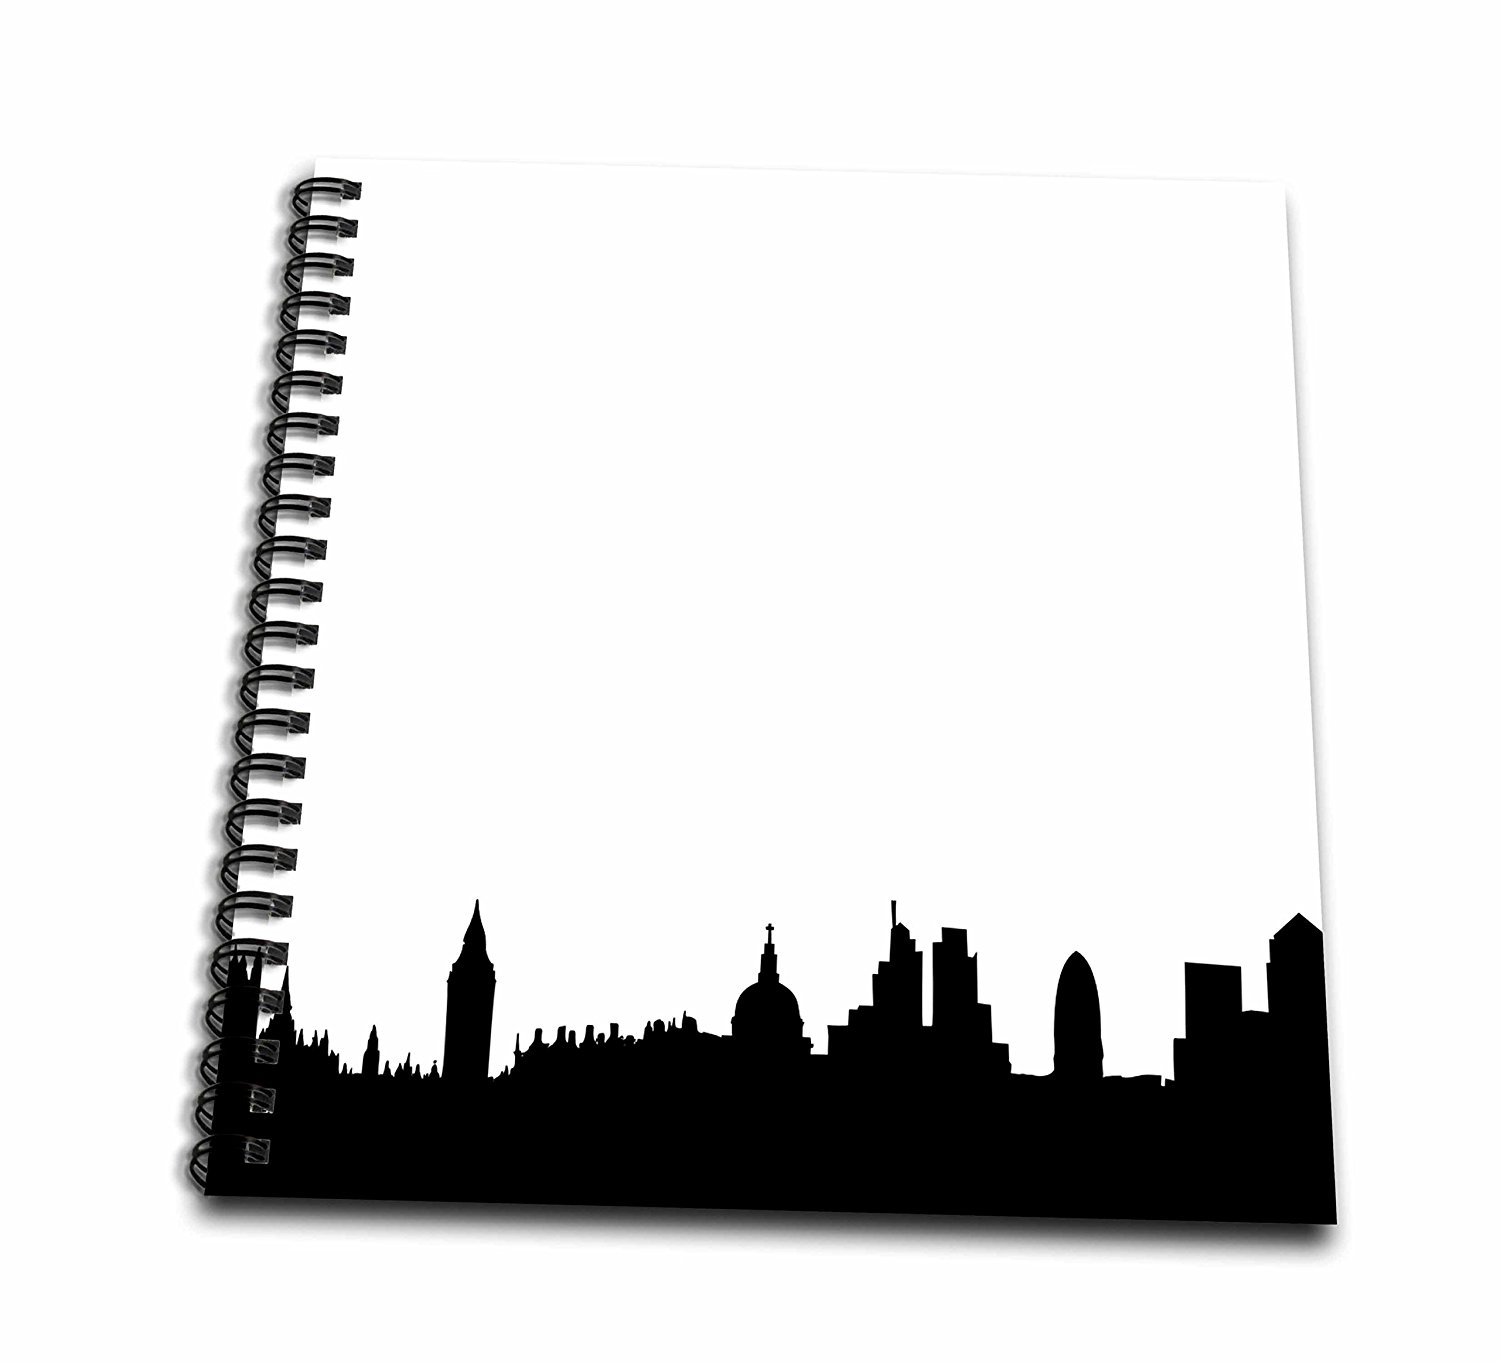 London Cityscape Silhouette At GetDrawings